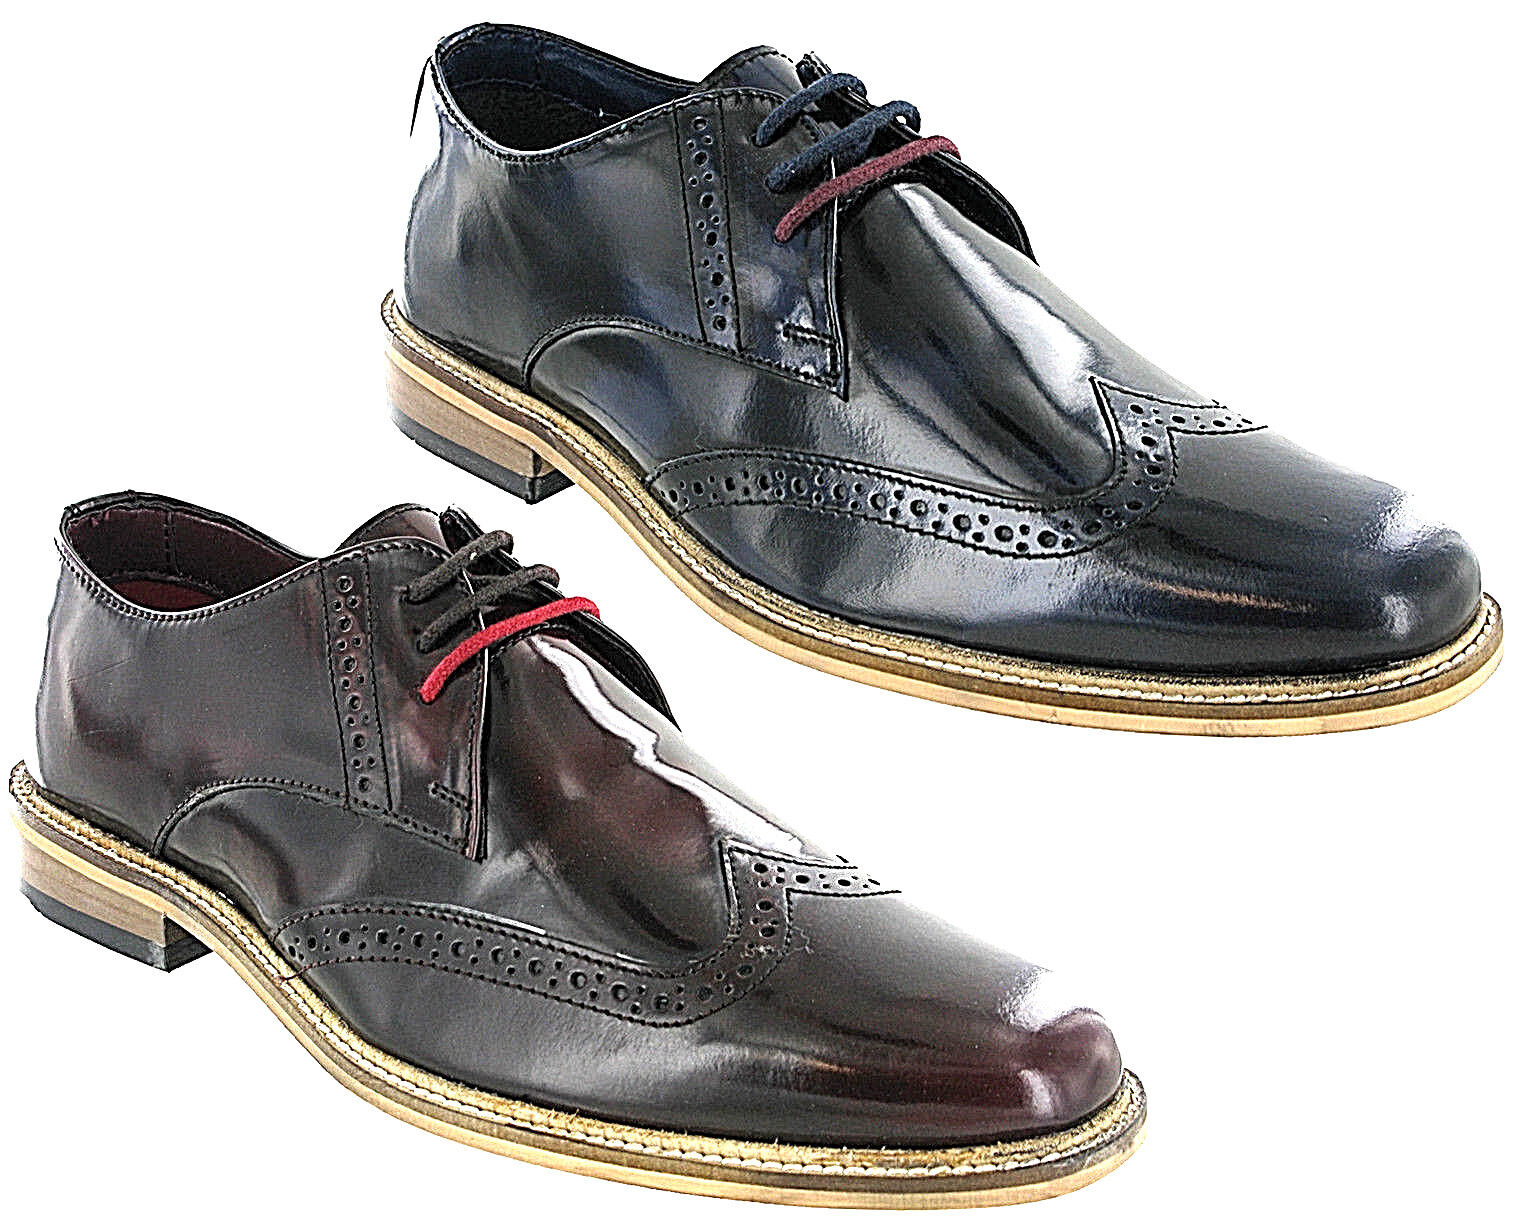 Lambretta Brogue Schuhes High Shine Formal Smart Franky Brush UK Off Men Lace UK Brush 7-12 21d05e